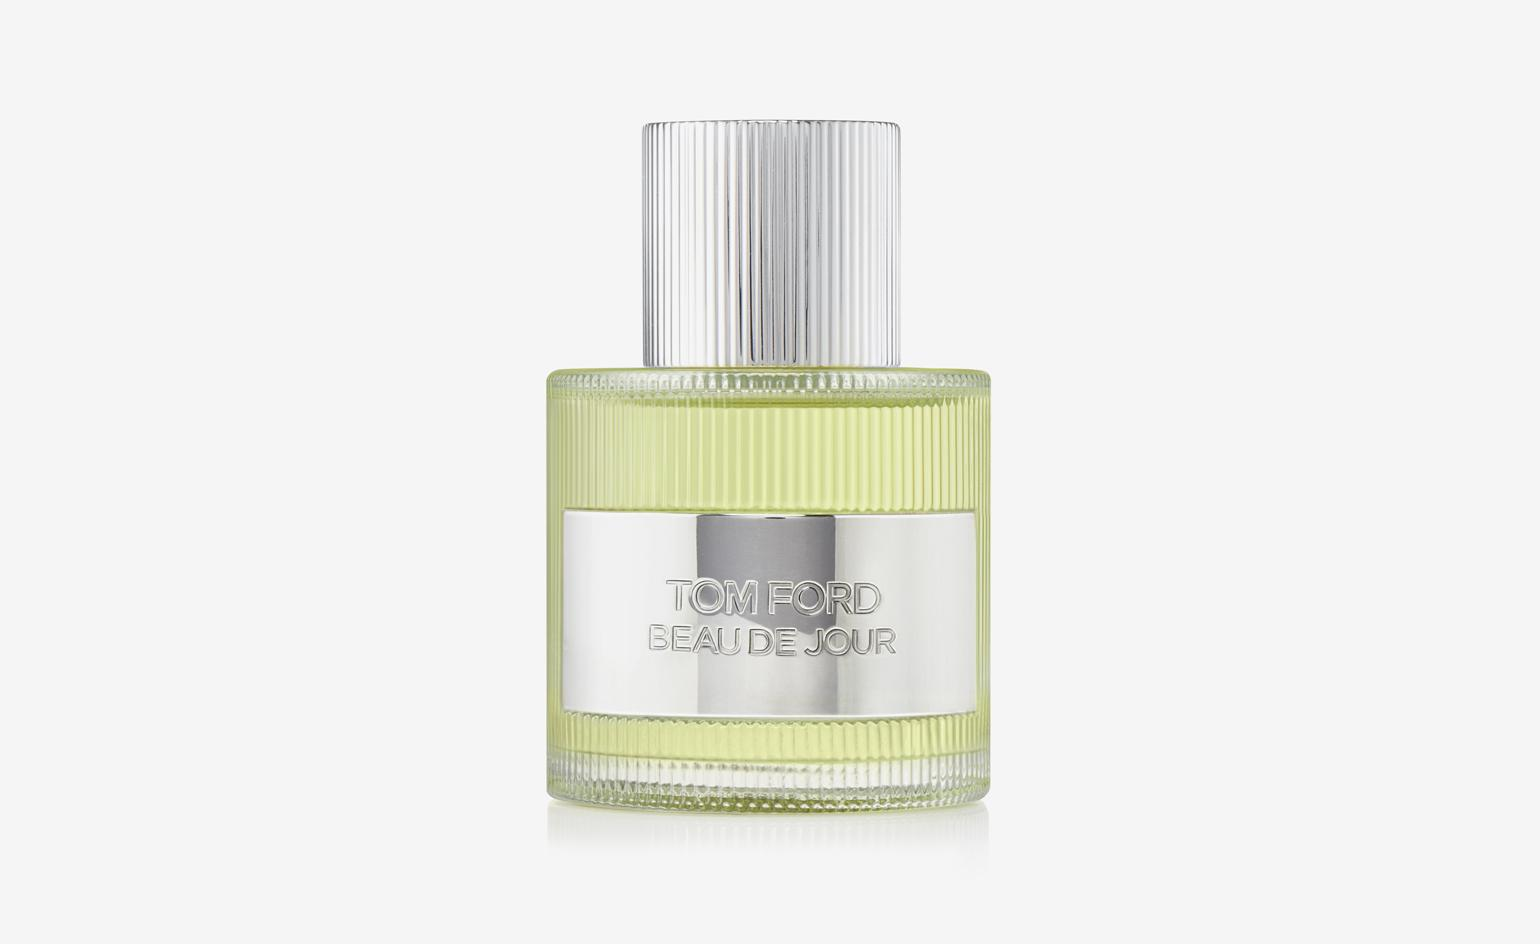 Beau de Jour: Tom Ford's fragrant ode to Old Hollywood